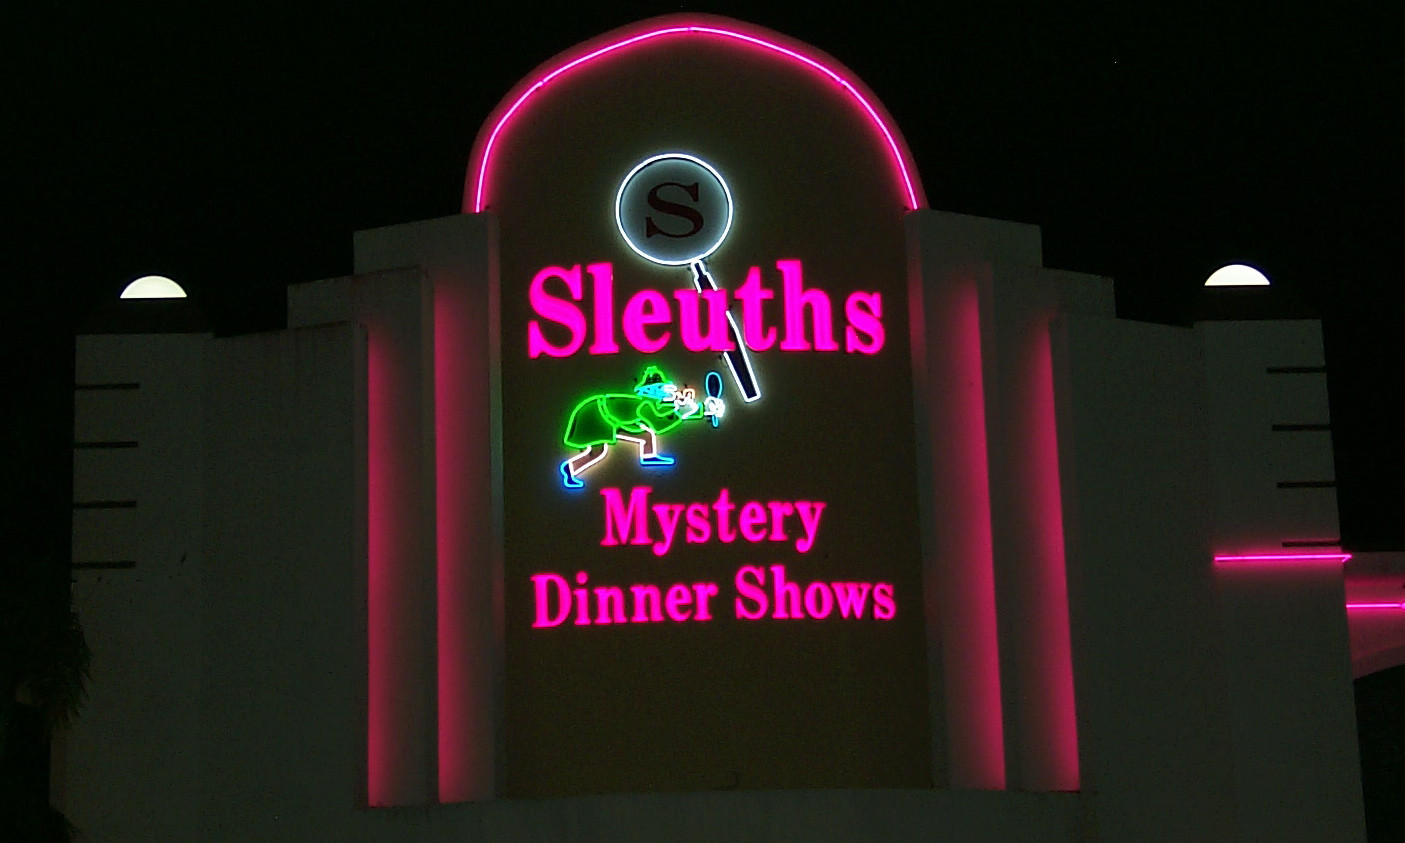 Sleuths Mystery Dinner Shows  Sleuths Mystery Dinner Shows